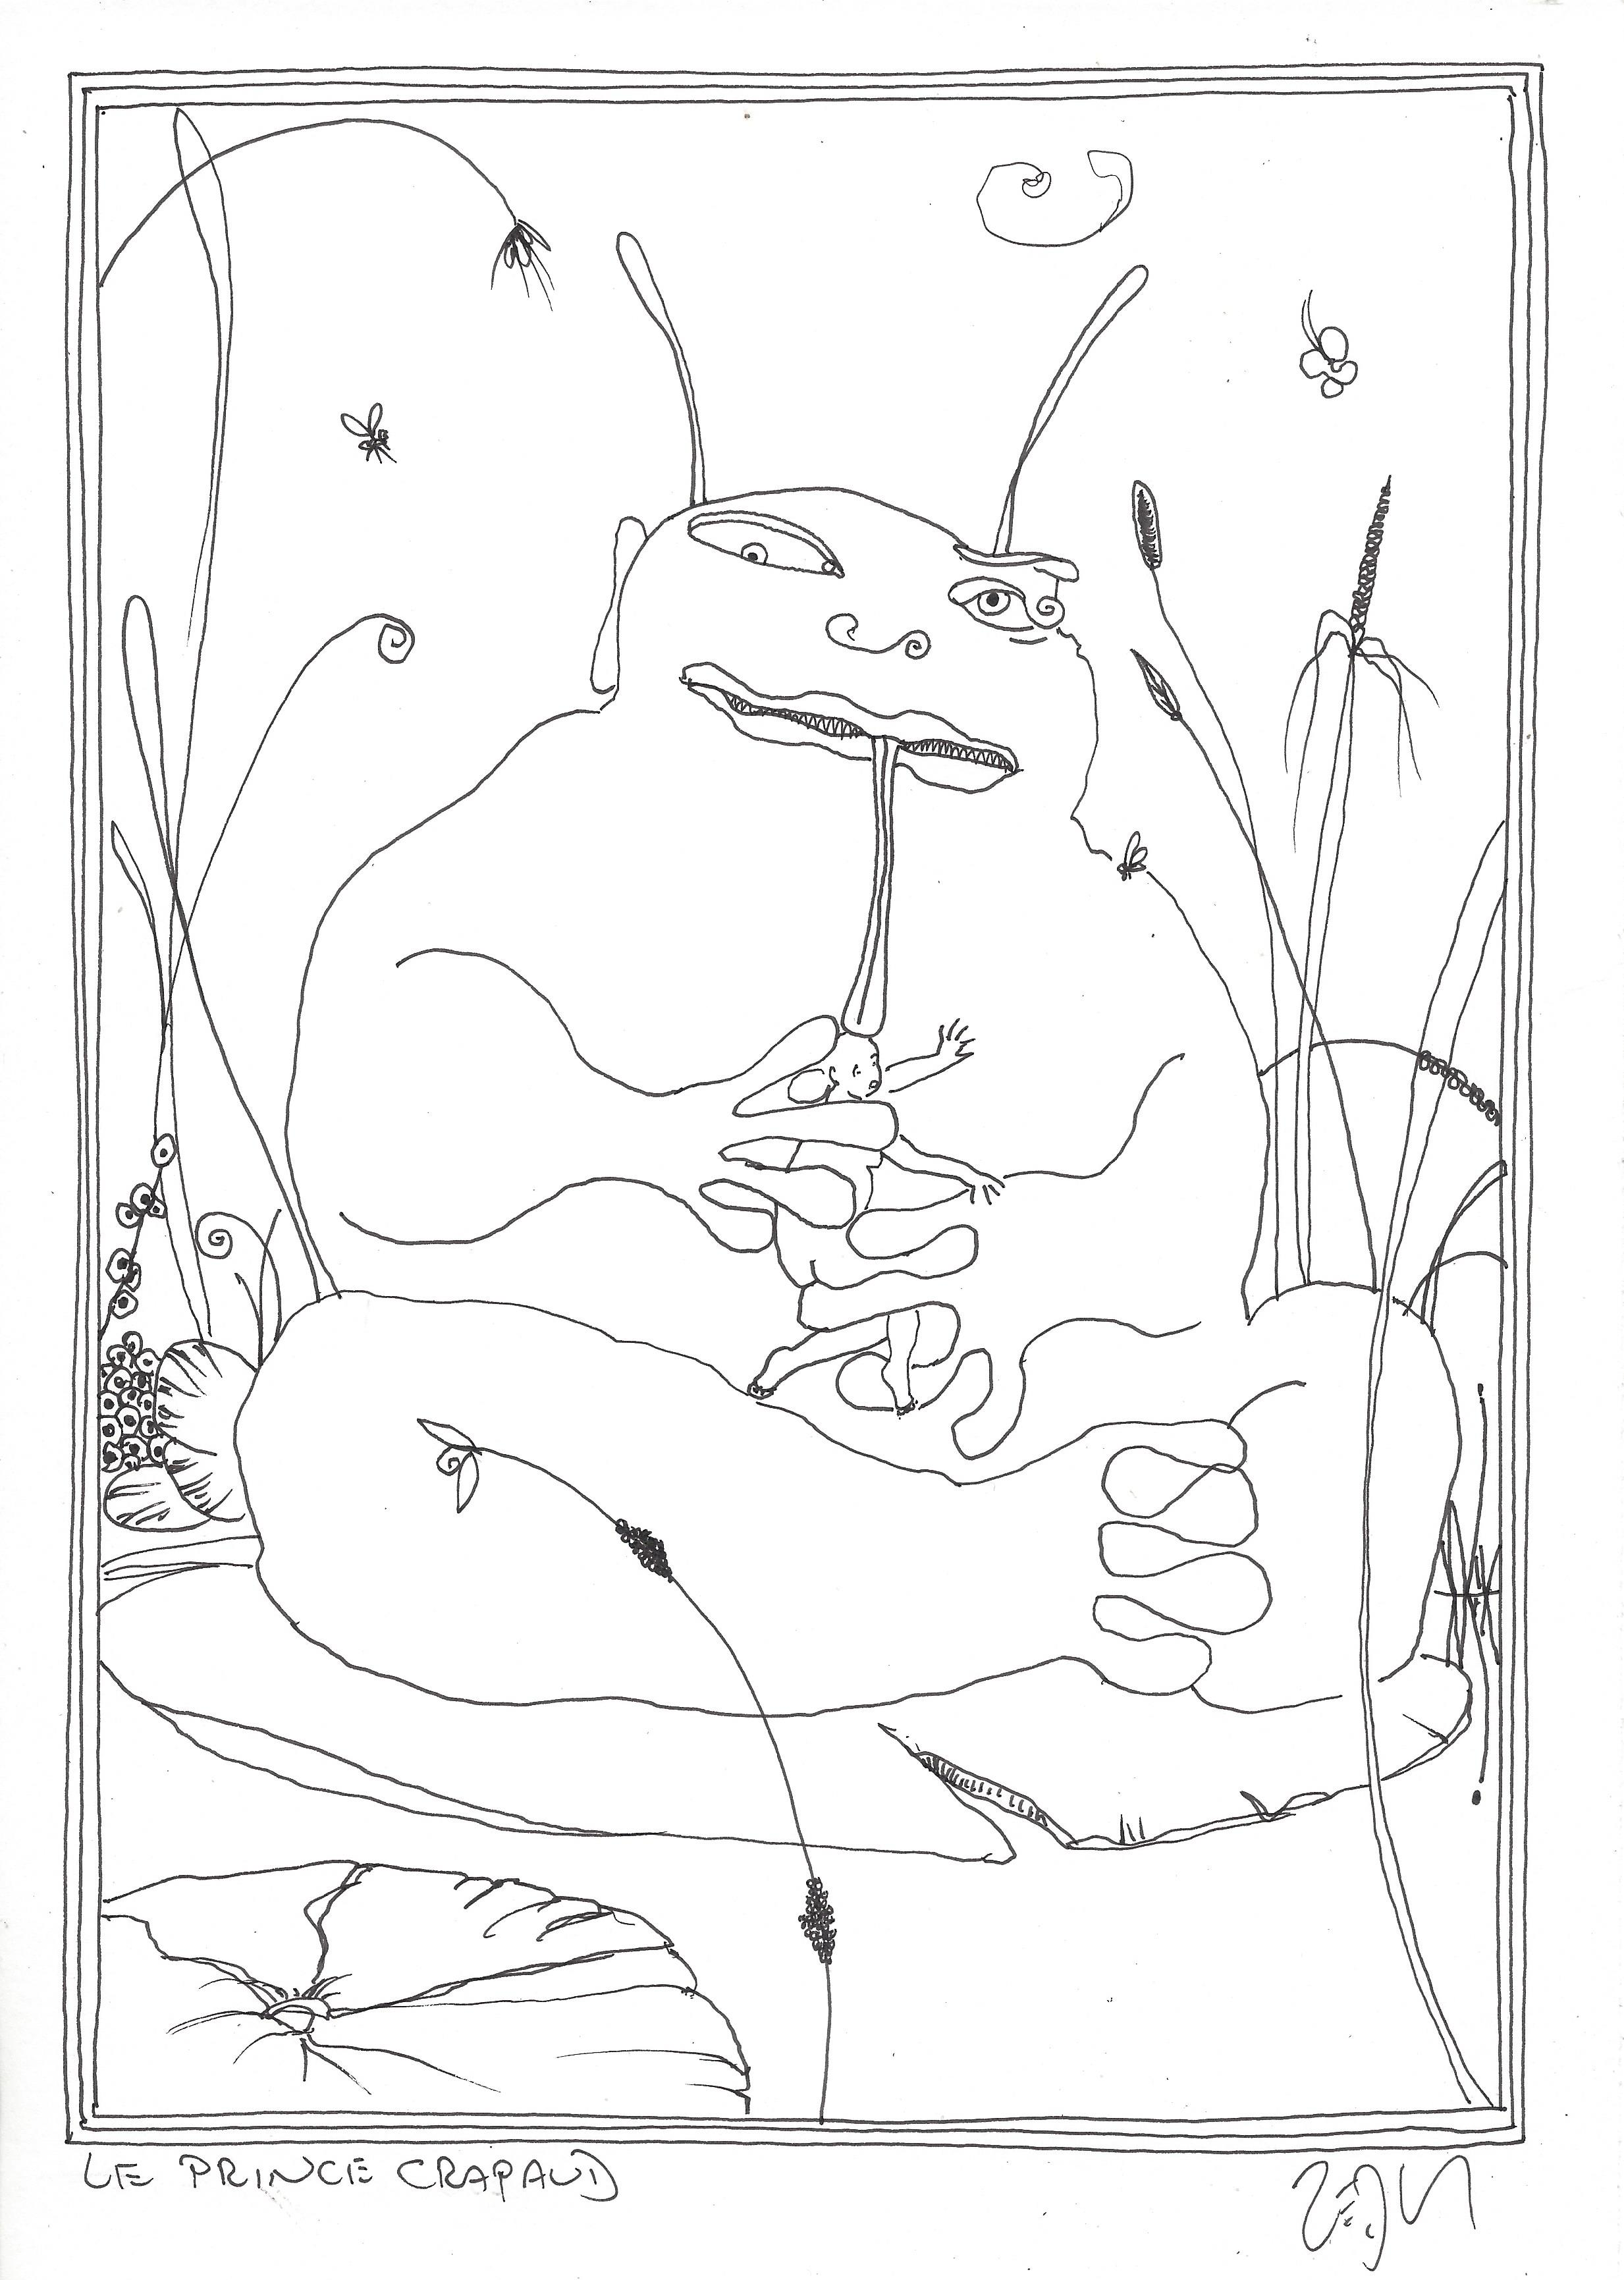 « The Frog Prince – Le Prince Crapaud »